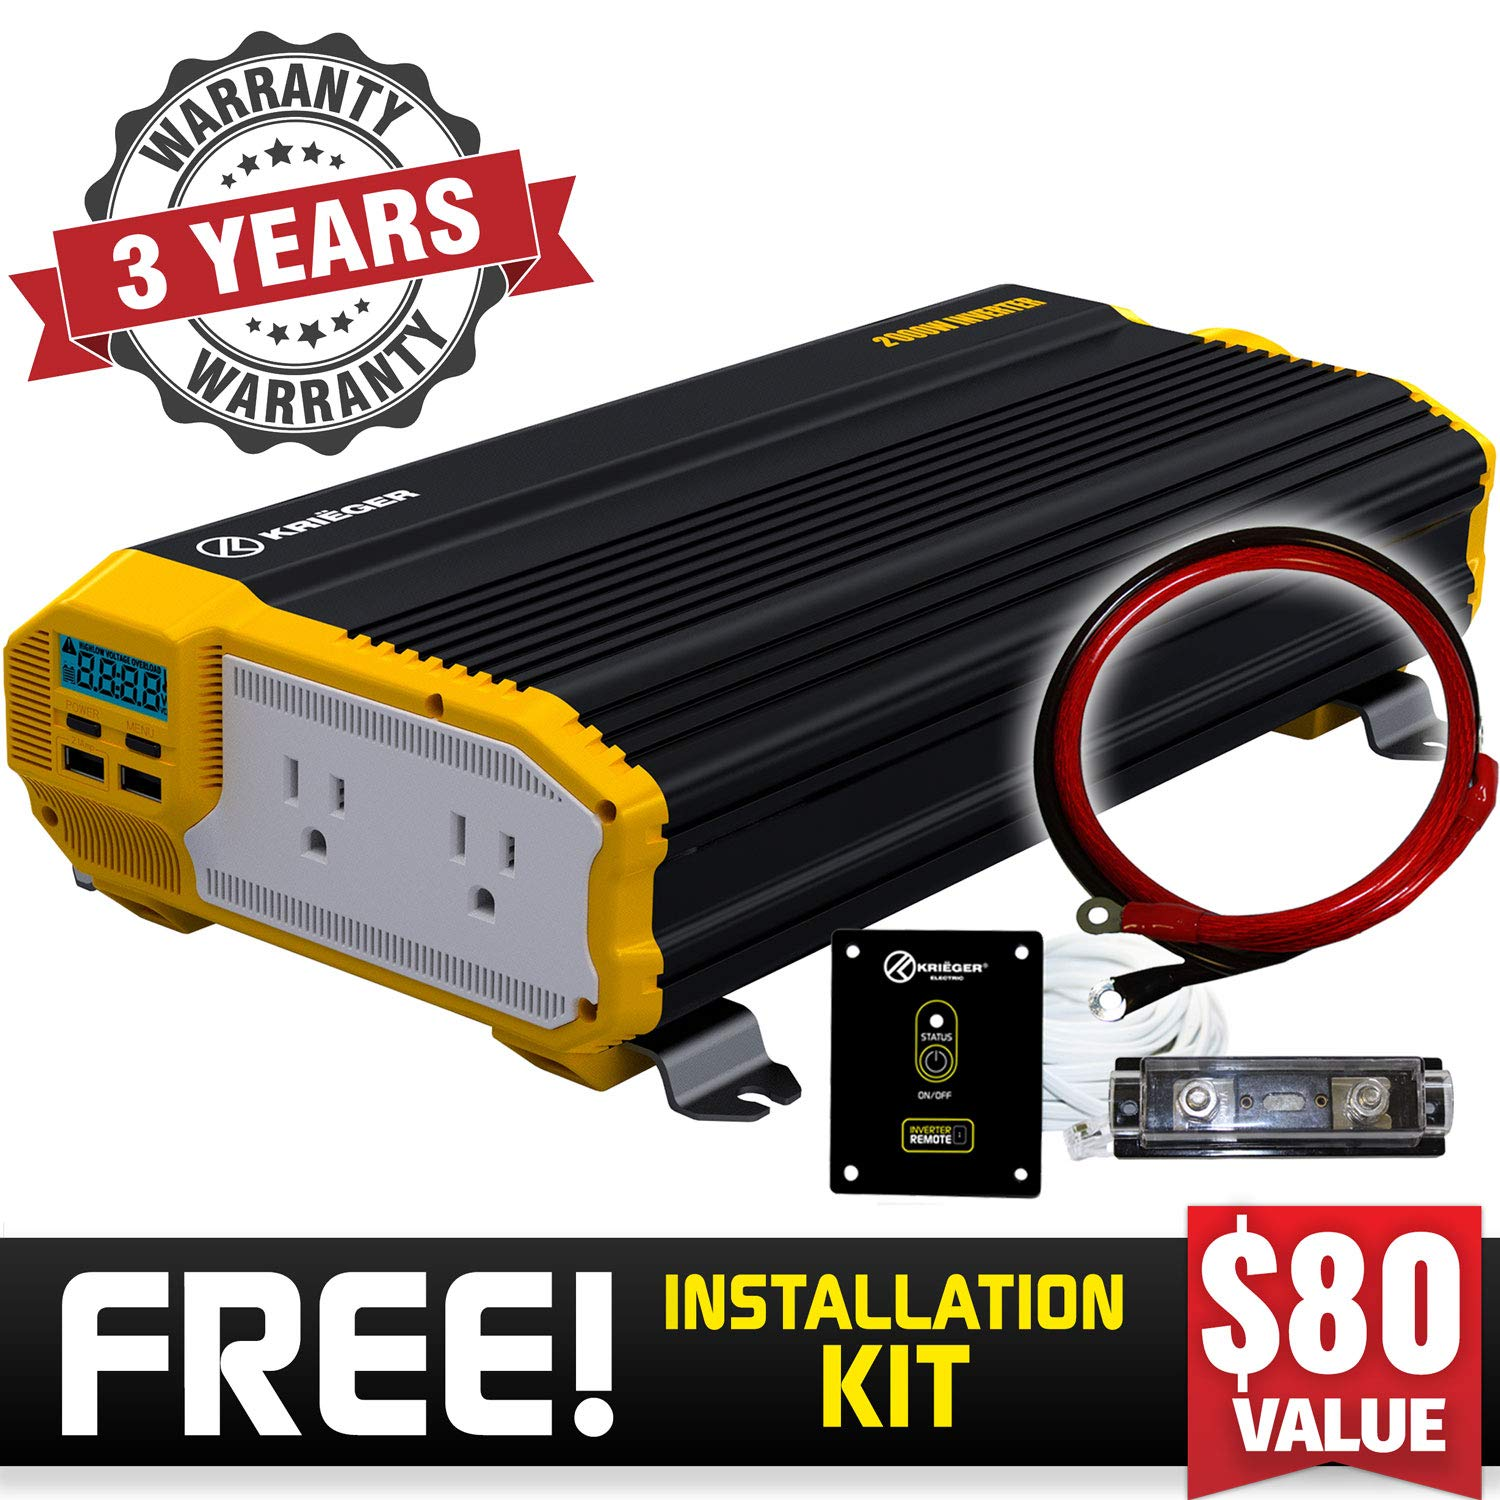 Krieger 2000 Watt 12V Power Inverter, Dual 110V AC Outlets, Installation Kit Included, Back Up Power Supply Perfect for an Emergency, Hurricane, Storm or Outage - MET Approved to UL and CSA Standards by K KRIËGER